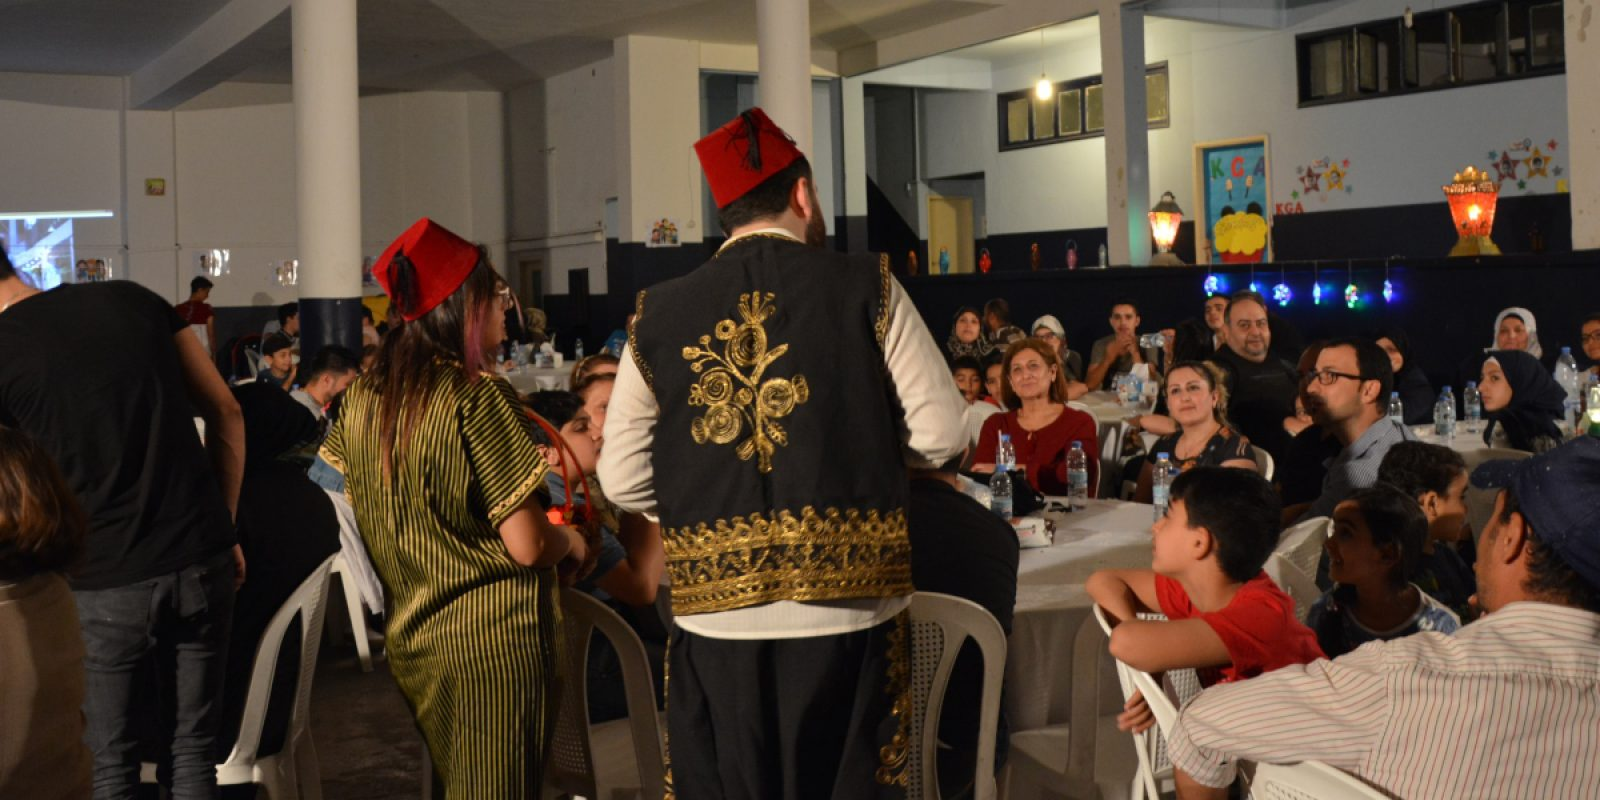 In Lebanon during Ramadan, Syrian refugee students and their parents came together for an Iftar at the Frans van der Lugt Centre in Bourj Hammoud. The event was also attended by the centre's Iraqi Christian families, who brought homemade biryani for their Muslim community members to enjoy – a gesture of peace and solidarity. (Jesuit Refugee Service)